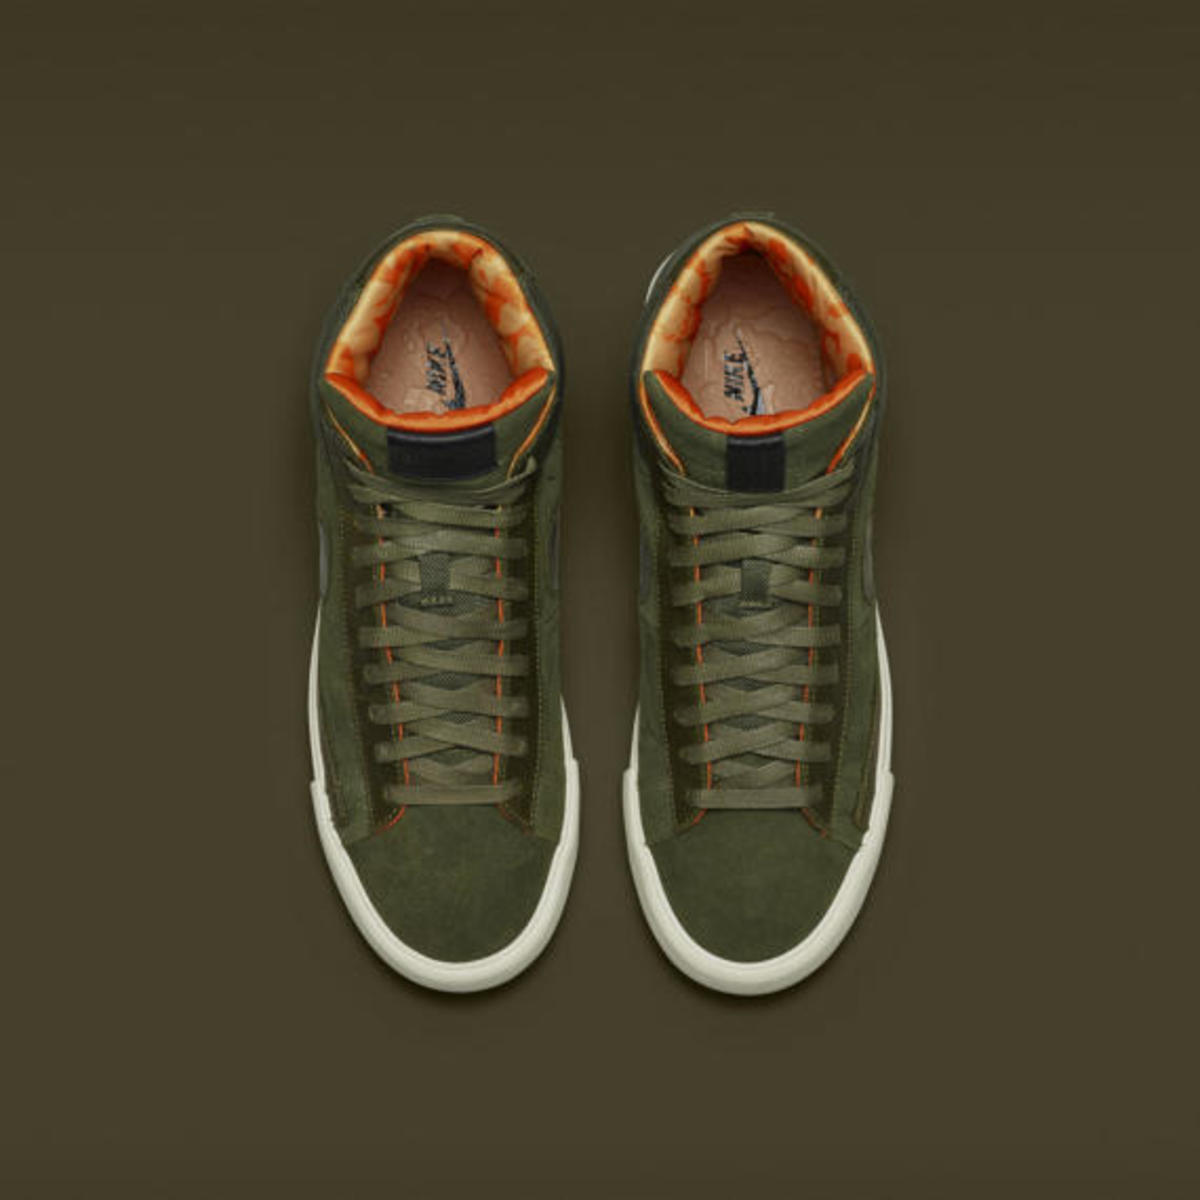 nike-mo-wax-by-james-lavelle-capsule-release-info-10